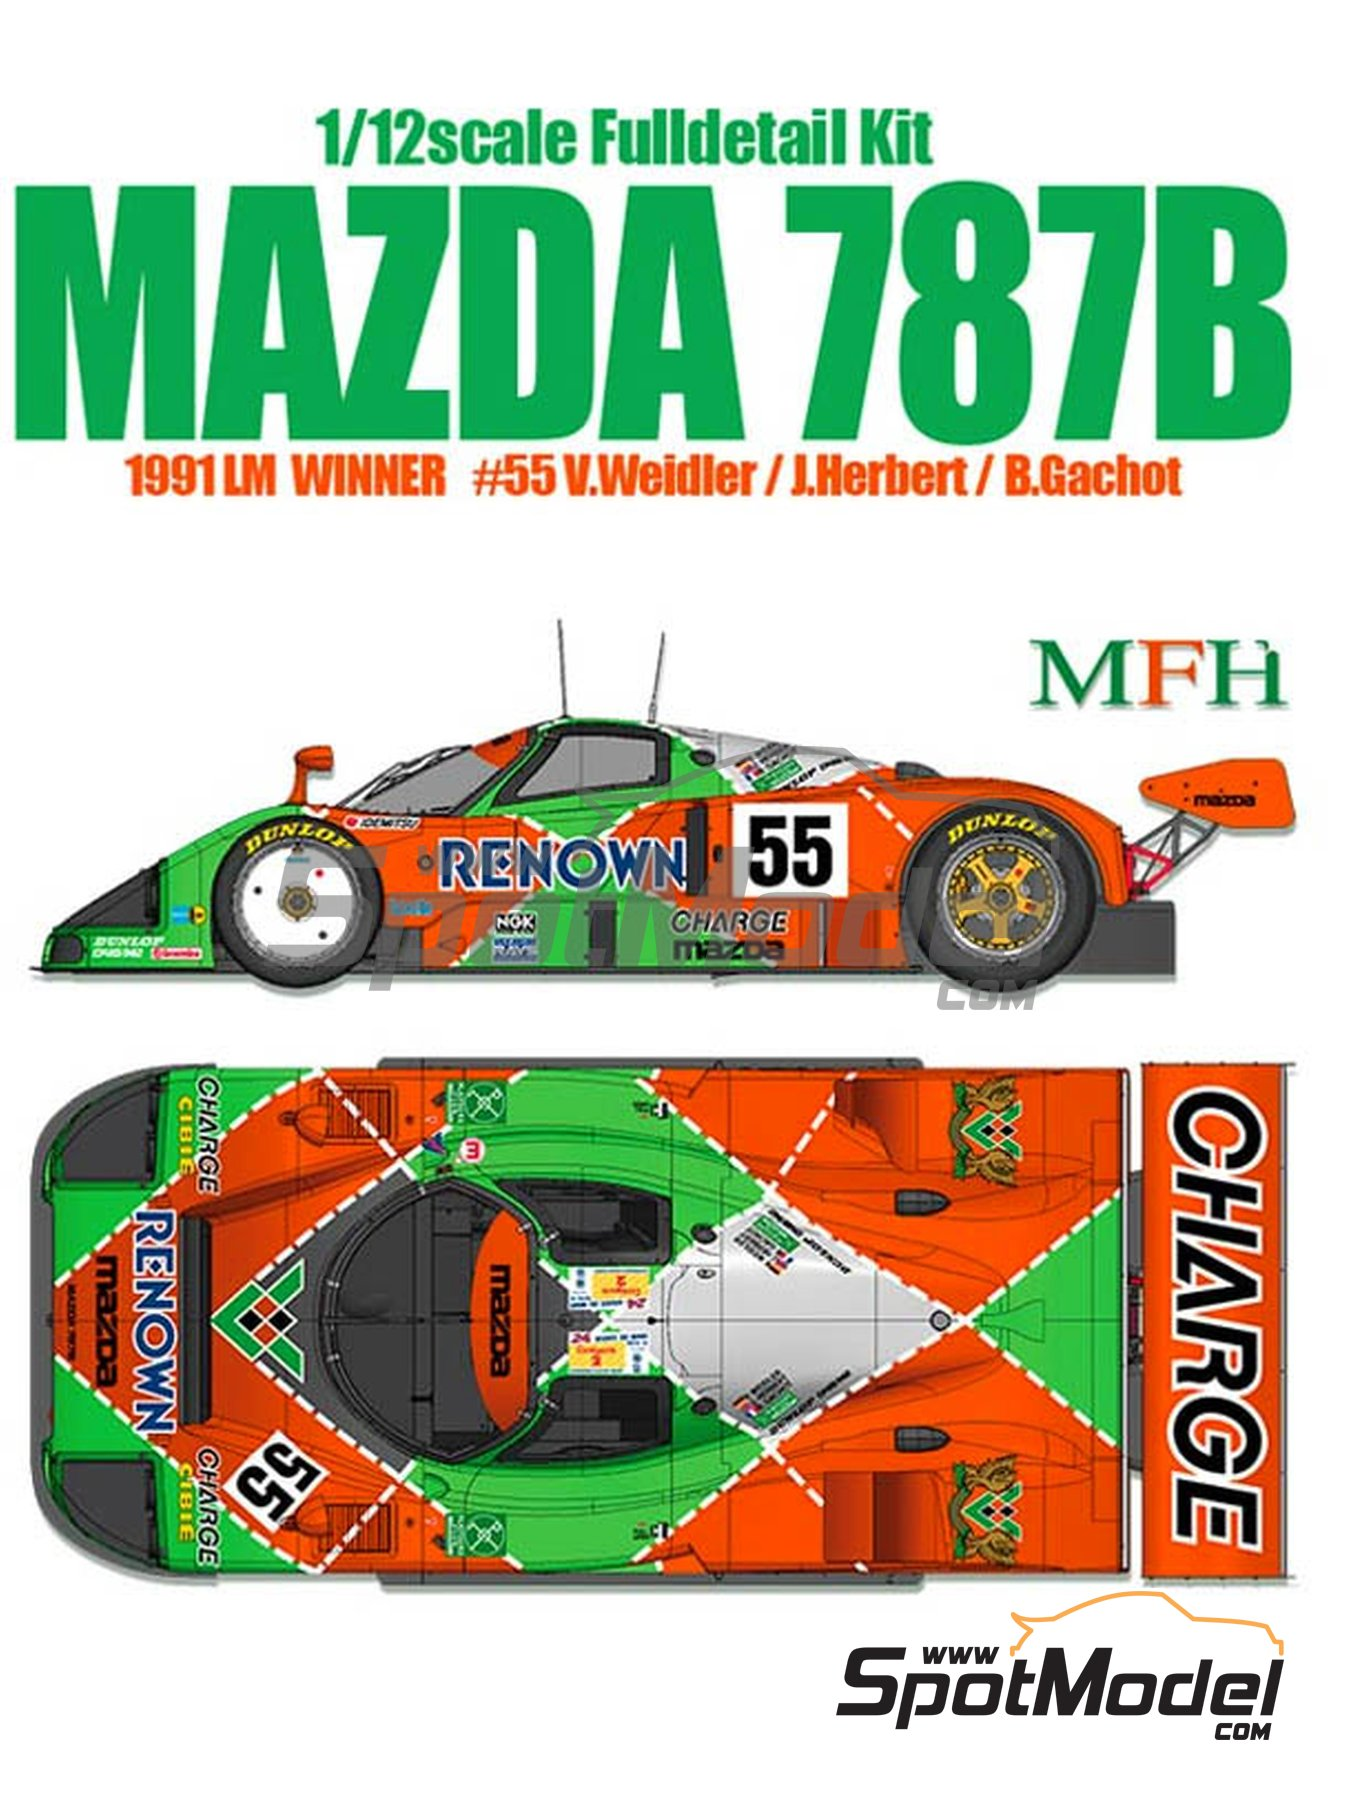 Mazda 787B Renown - 24 Hours Le Mans 1991 | Model car kit in 1/12 scale manufactured by Model Factory Hiro (ref. MFH-K628) image